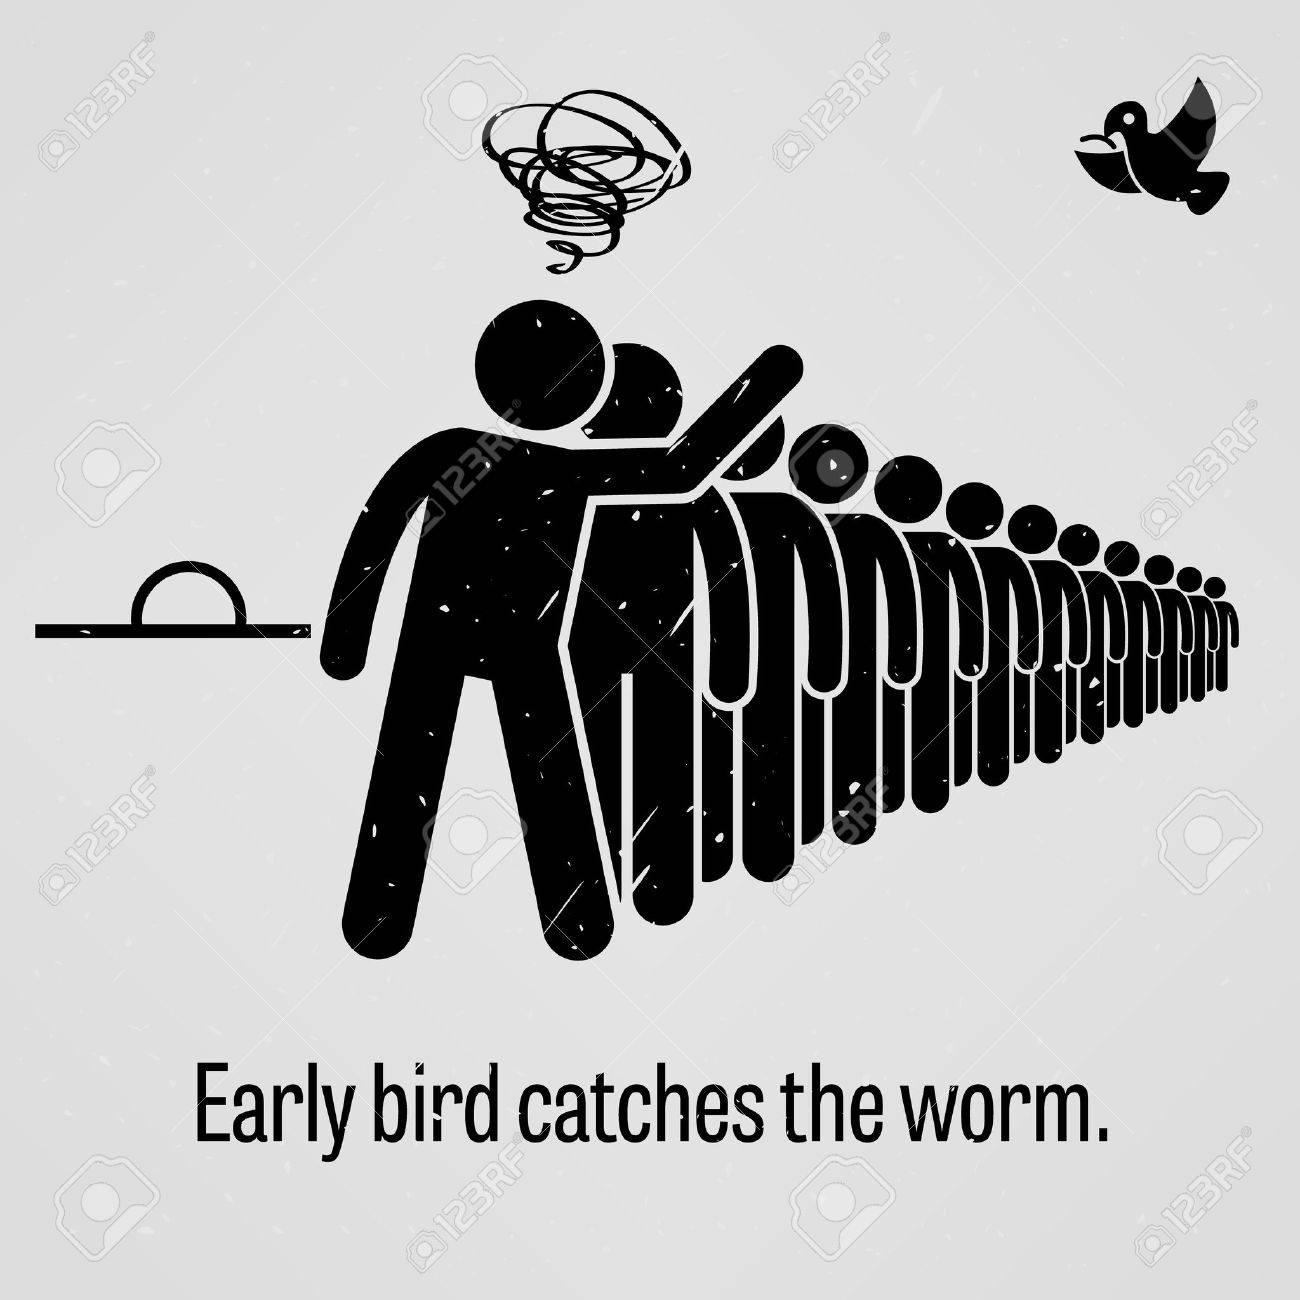 Early Bird Catches the Worm - 36825249